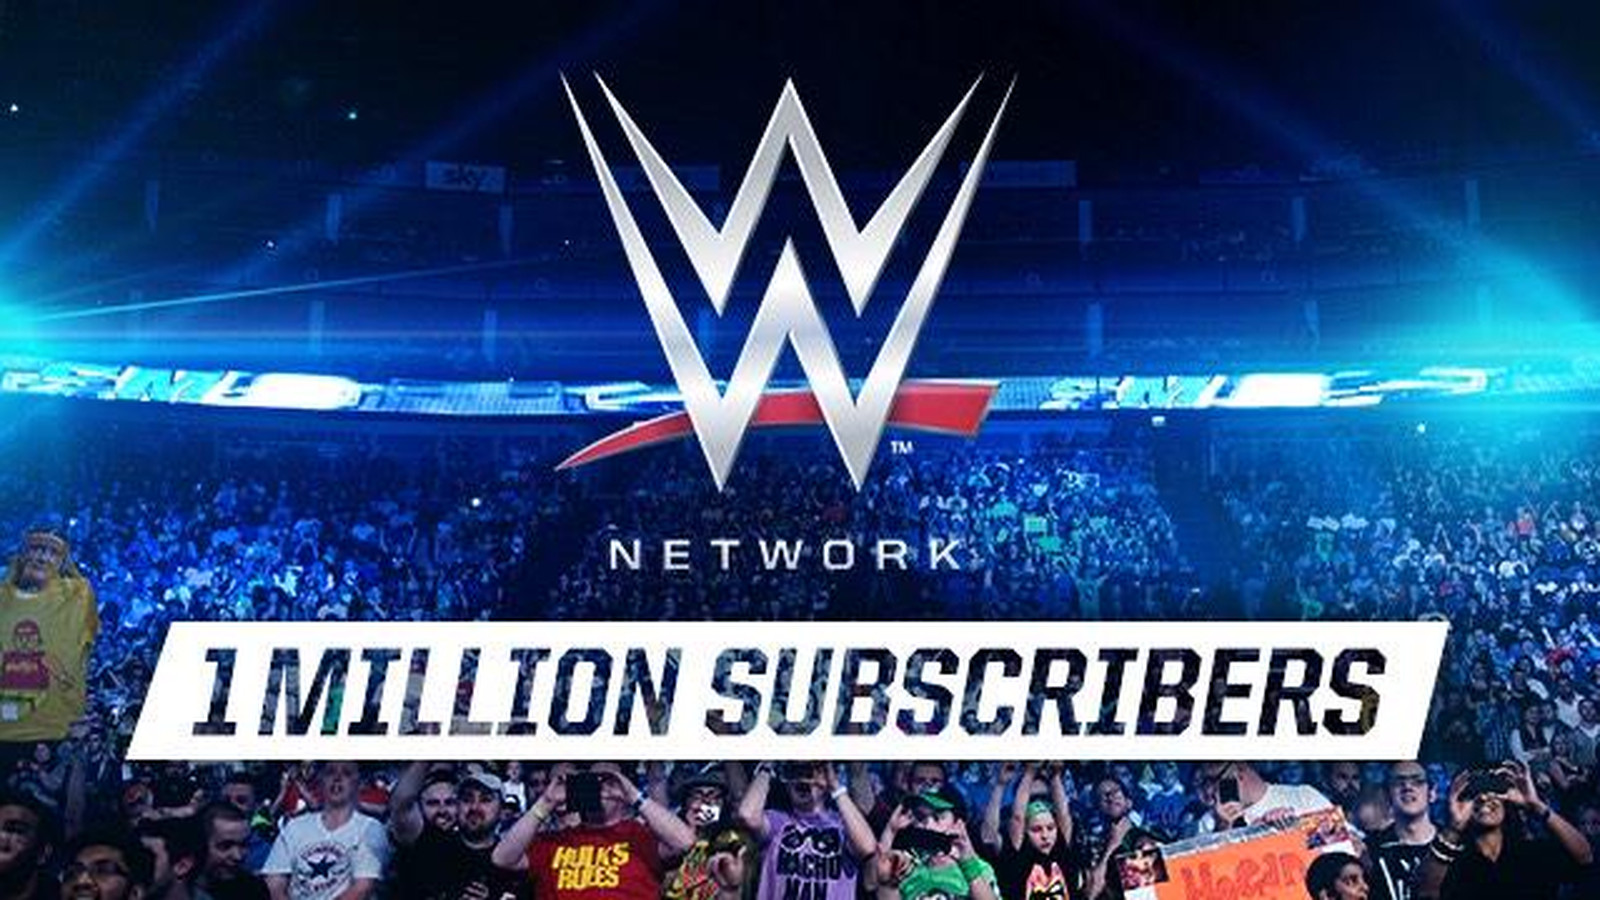 Wwe announces 2q14 earnings wwe network subscriptions youtube - Wwe Network Averages Over One Million Paid Subscribers In Second Quarter Cageside Seats